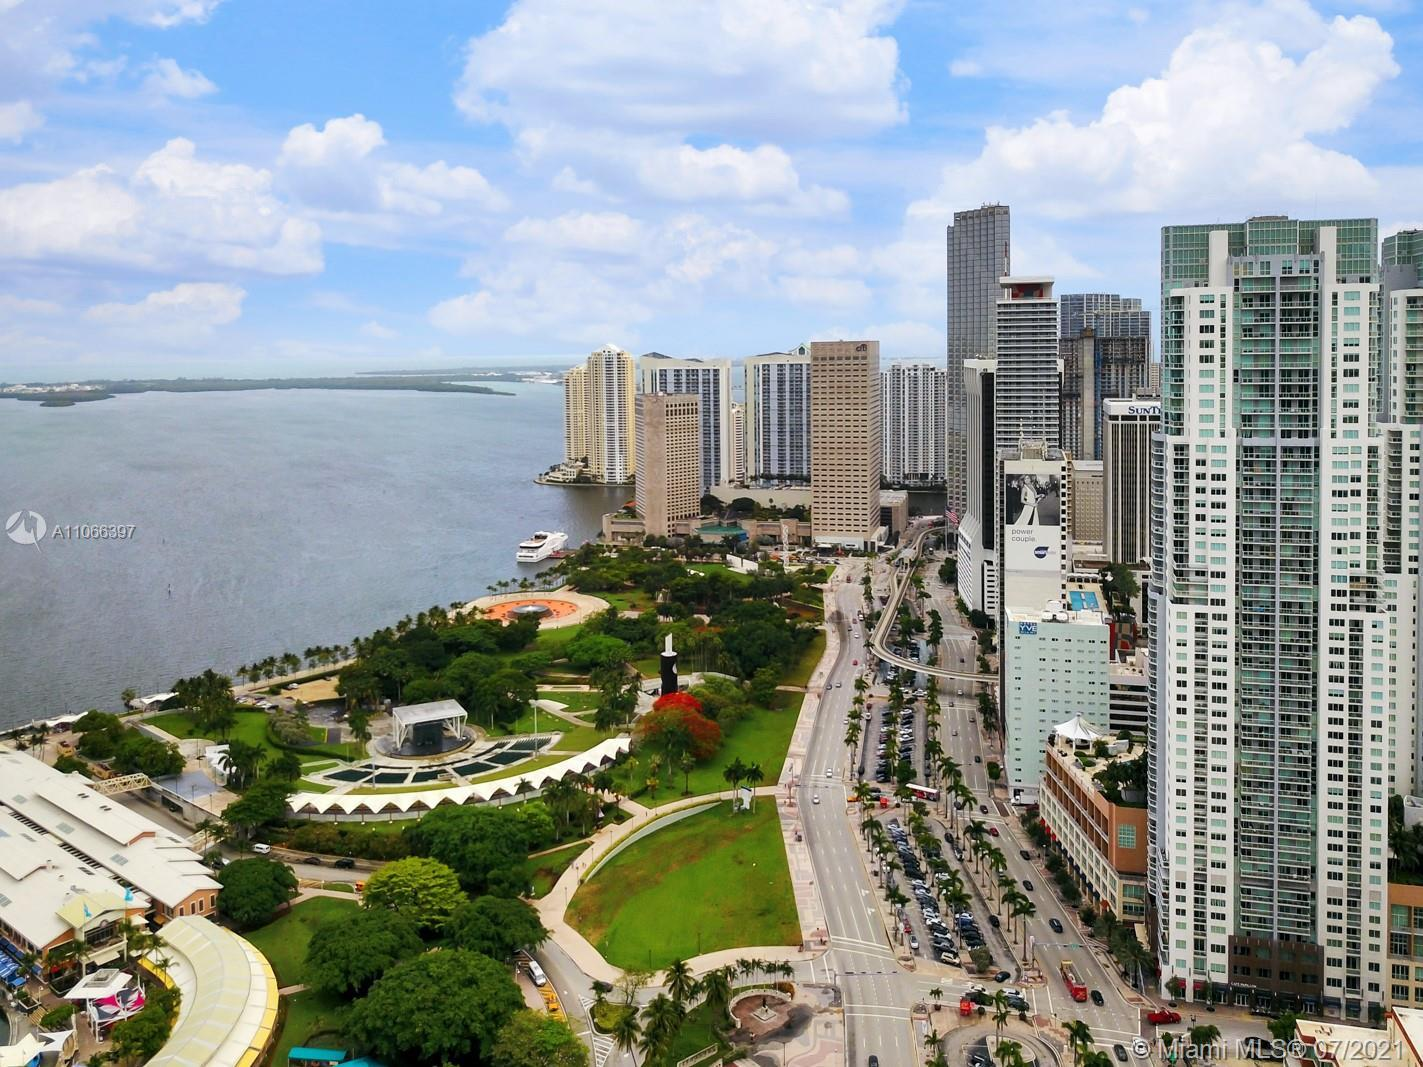 Open SE views and amazing location right across from Bayfront Park. This spacious studio has stainle